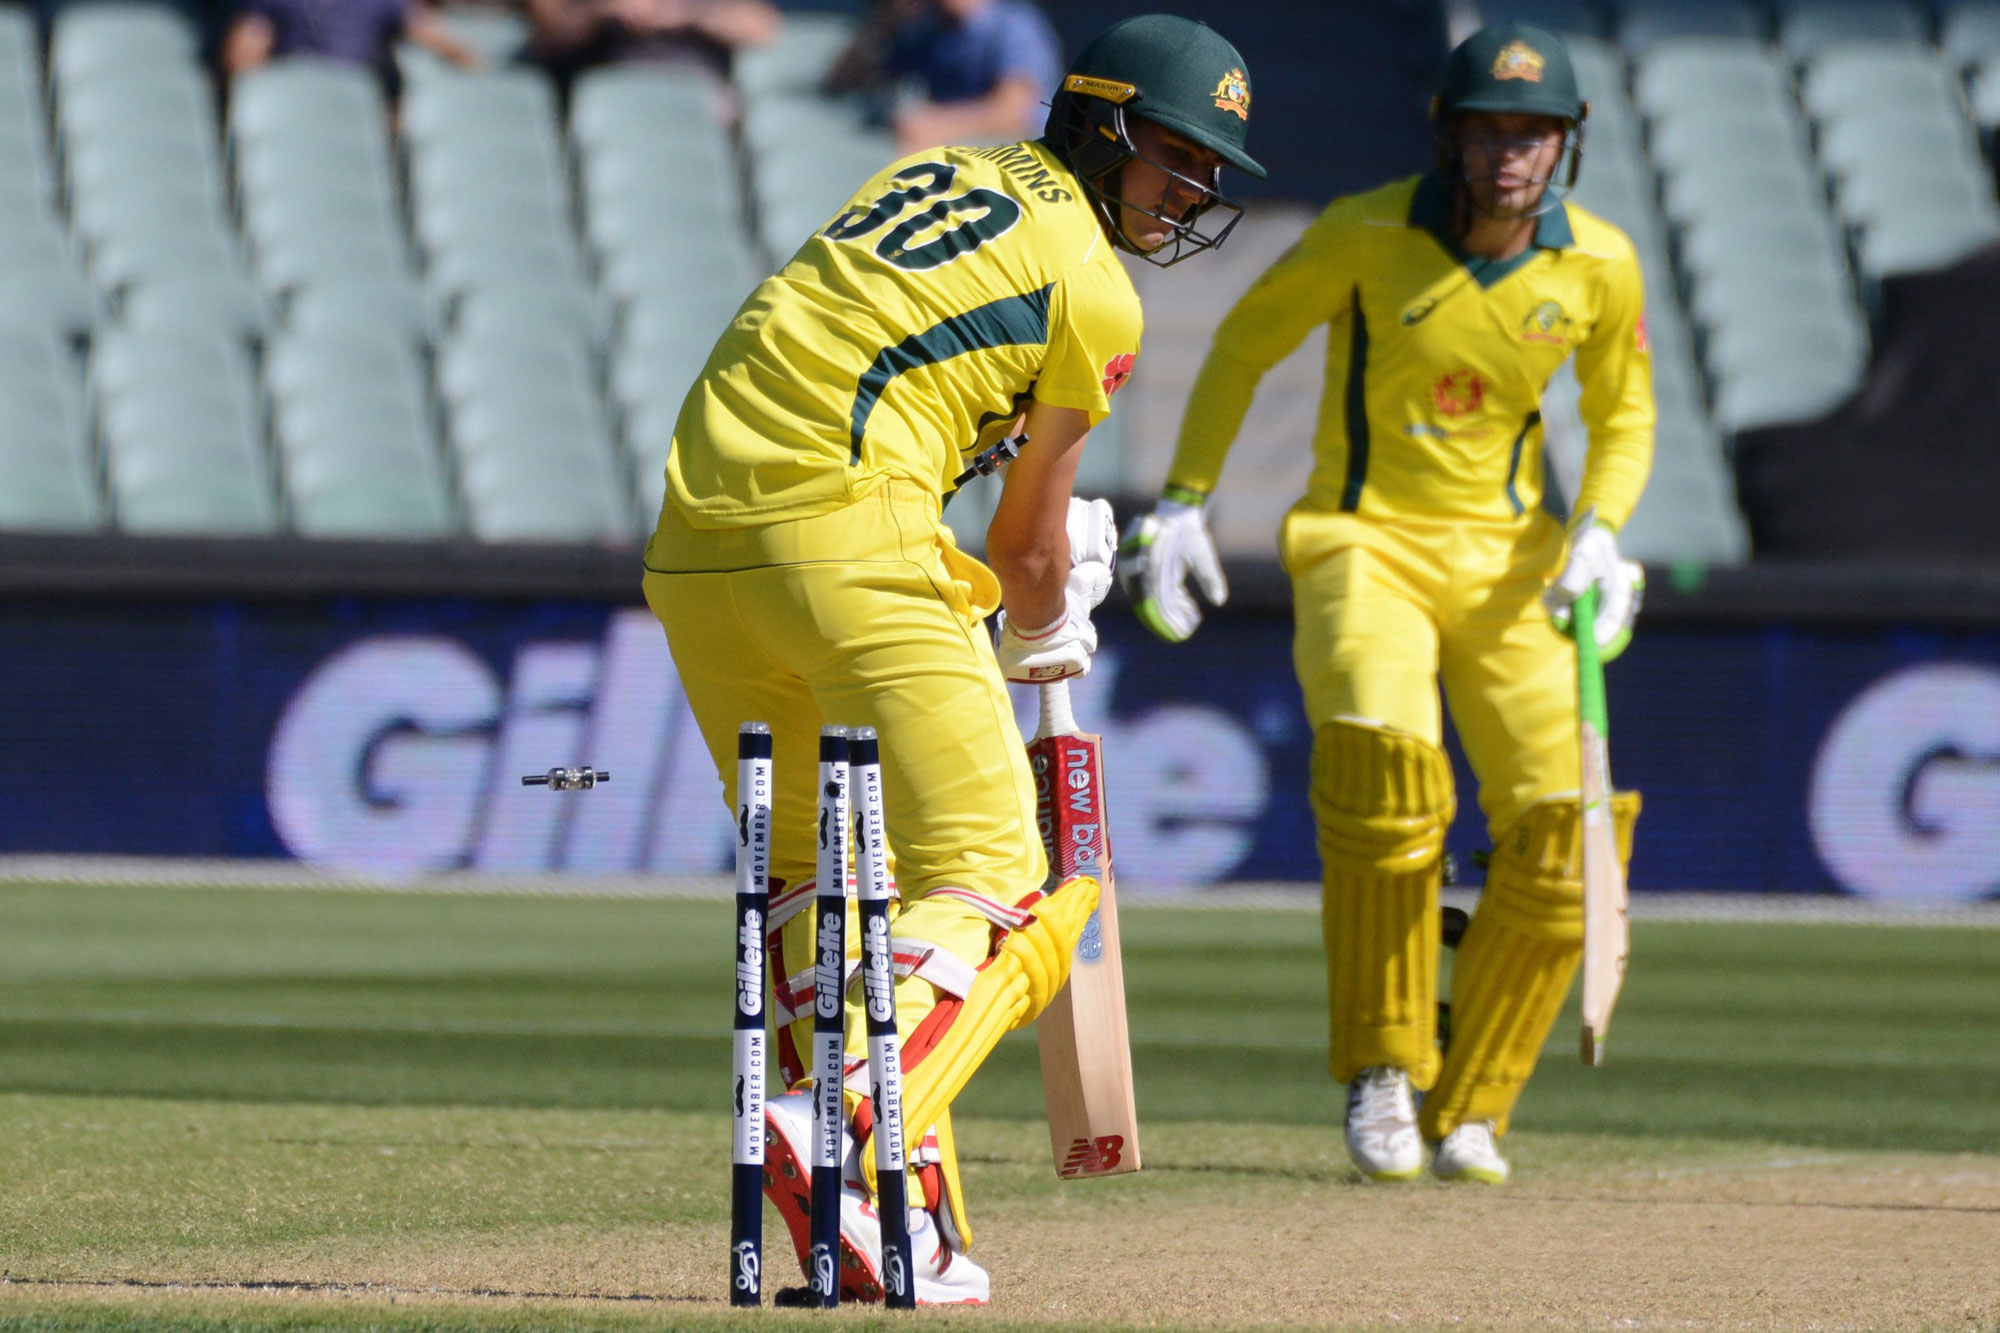 Australian batsman Pat Cummins (L) is bowled during the second one day international cricket match between Australia and South Africa at the Adelaide Oval in Adelaide on November 9, 2018. (Photo by Brenton EDWARDS / AFP) / -- IMAGE RESTRICTED TO EDITORIAL